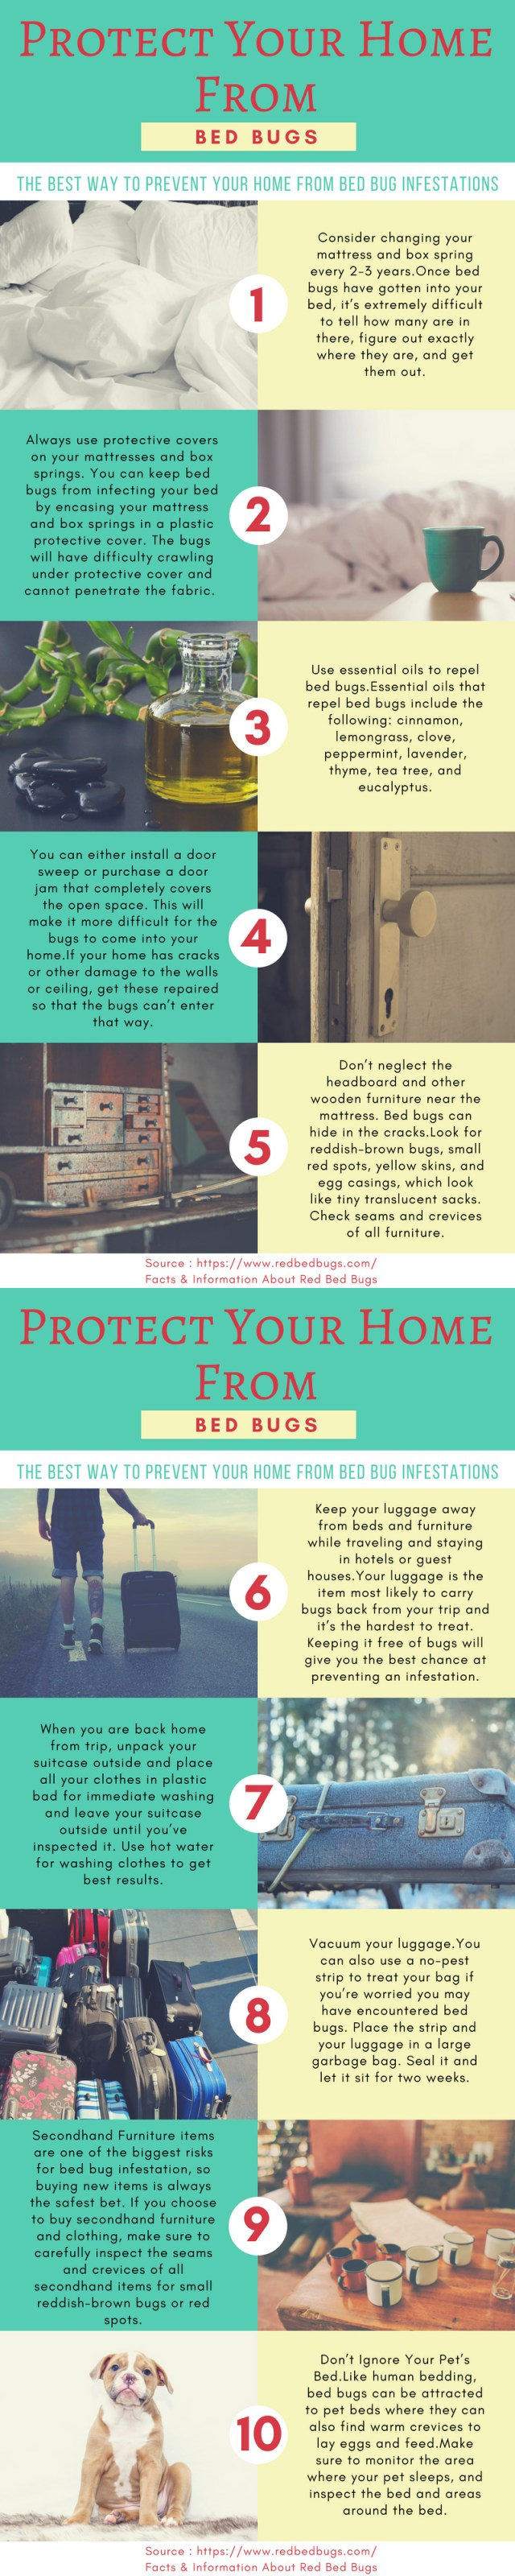 Red Bed Bugs Prevention Tips Infographic